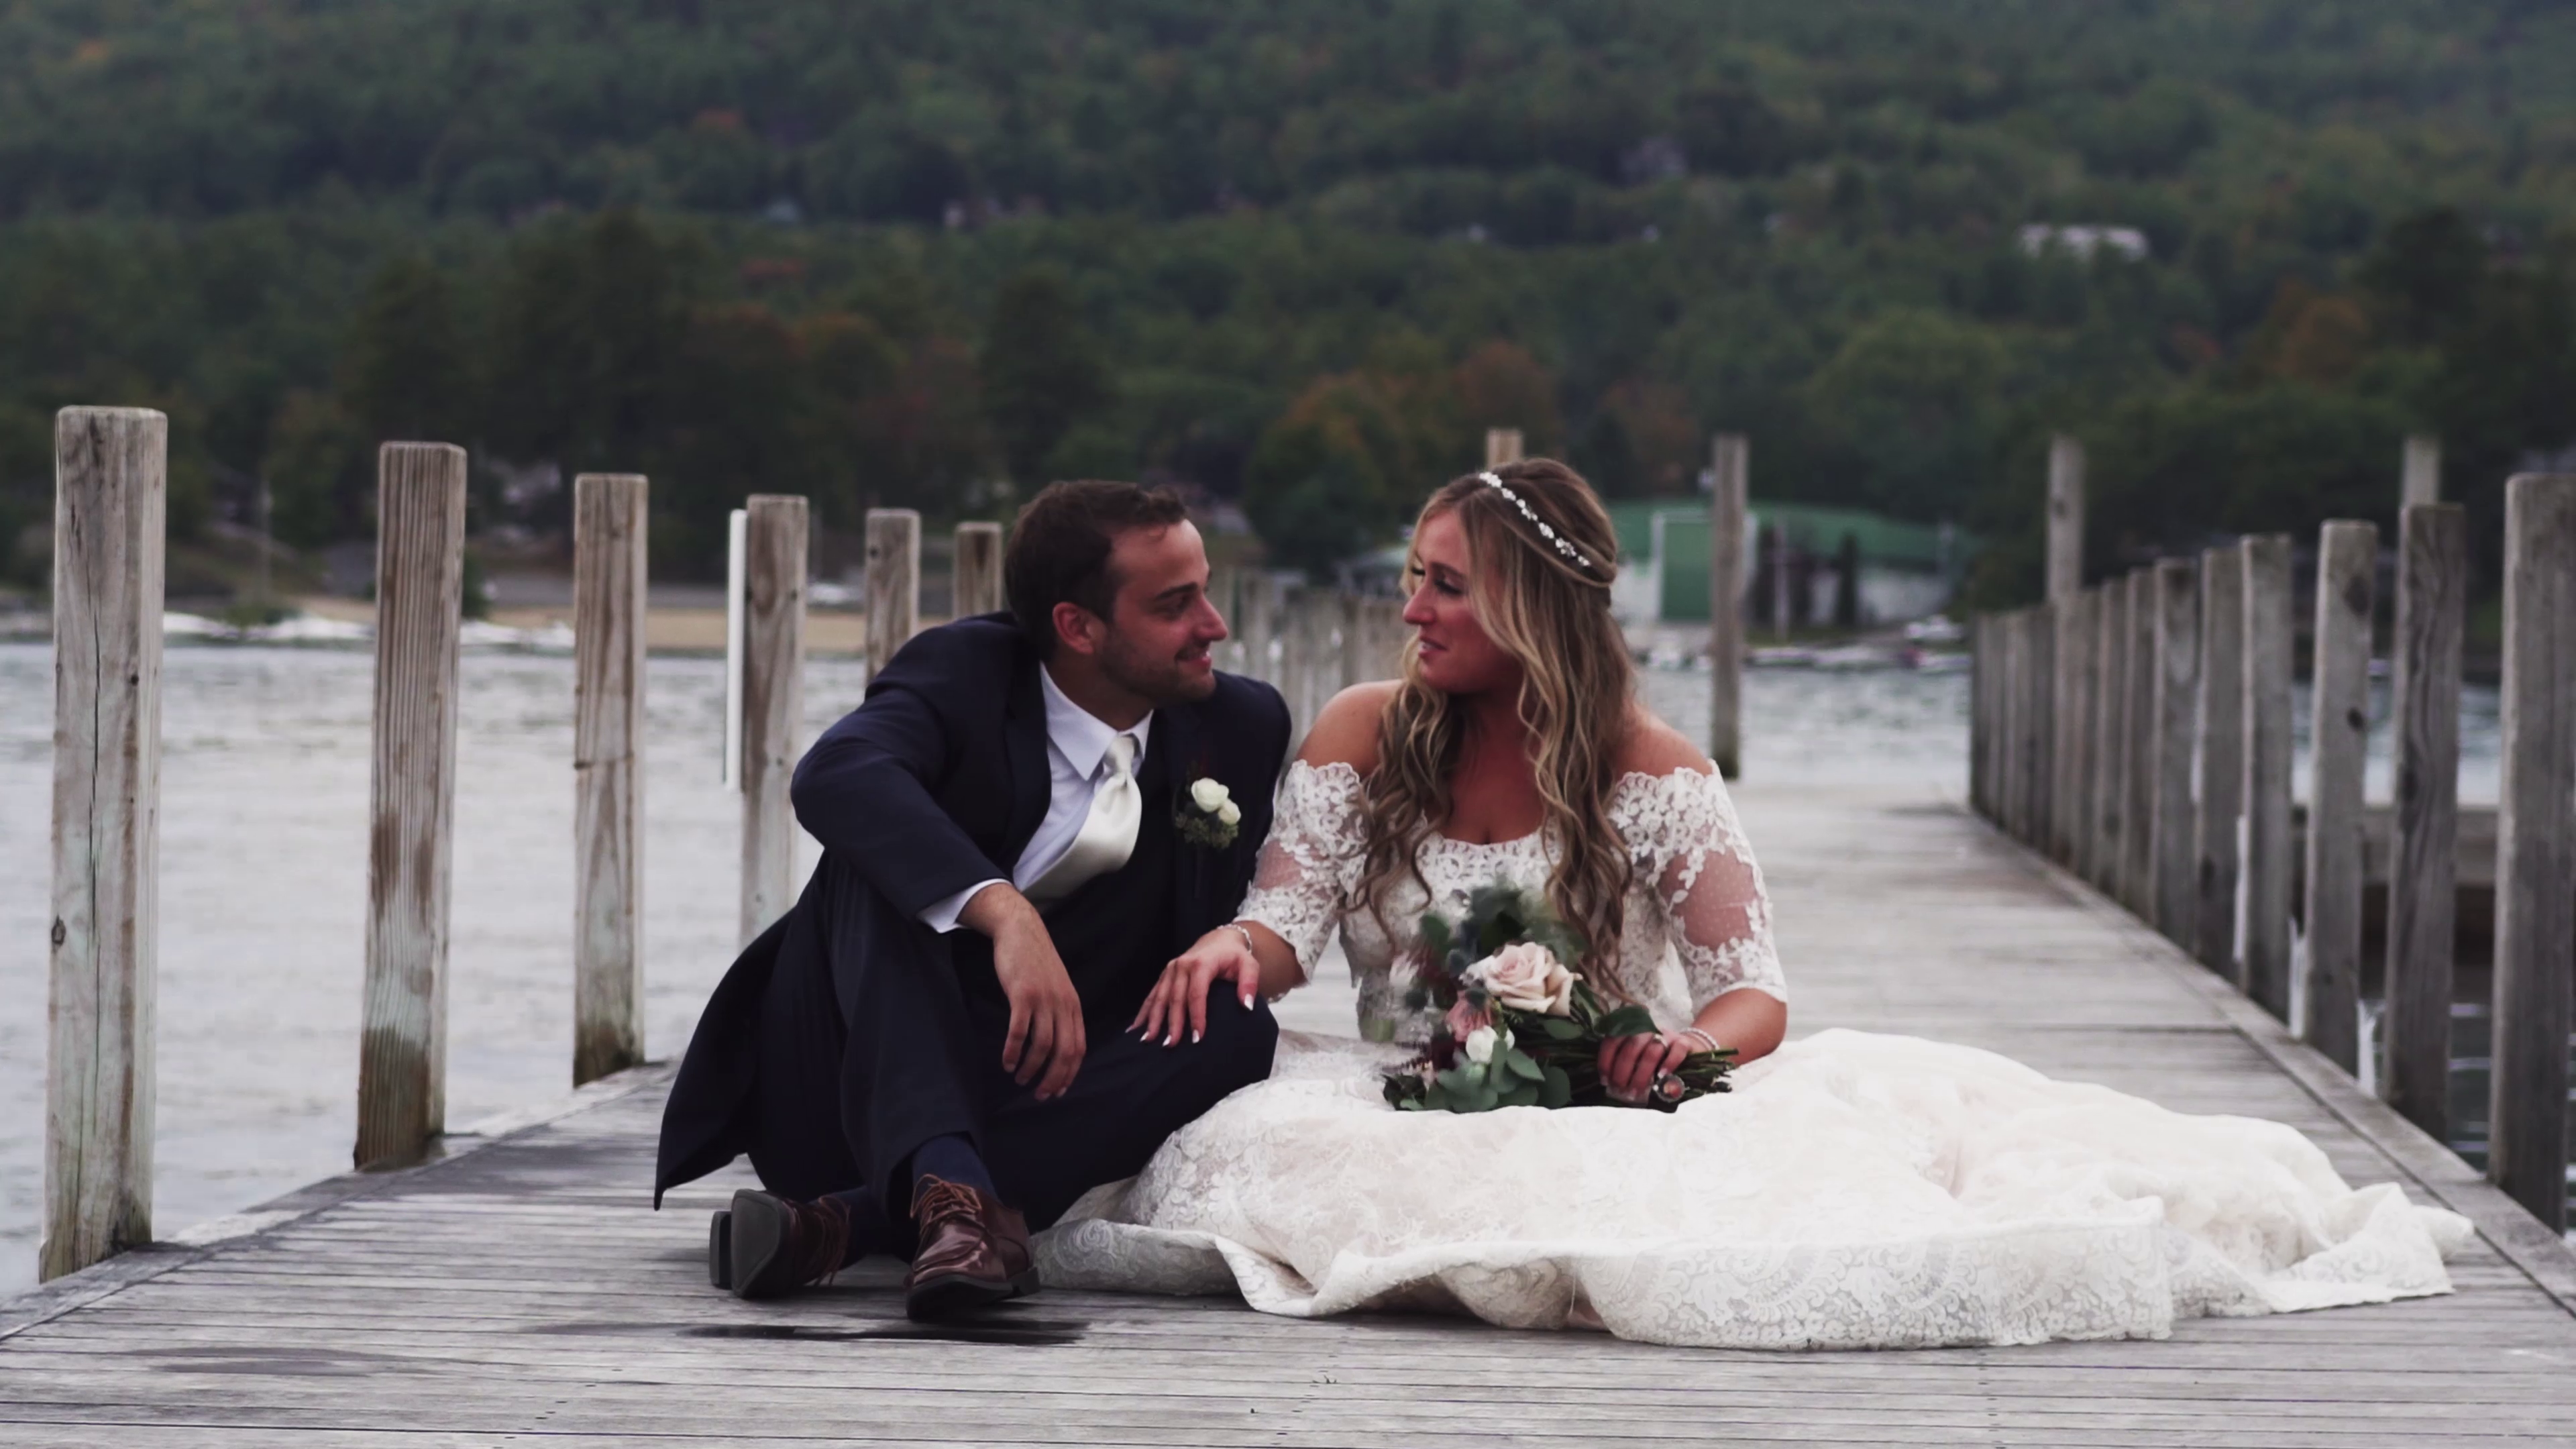 Sarah + Evan | Lake George, New York | The Sagamore Resort